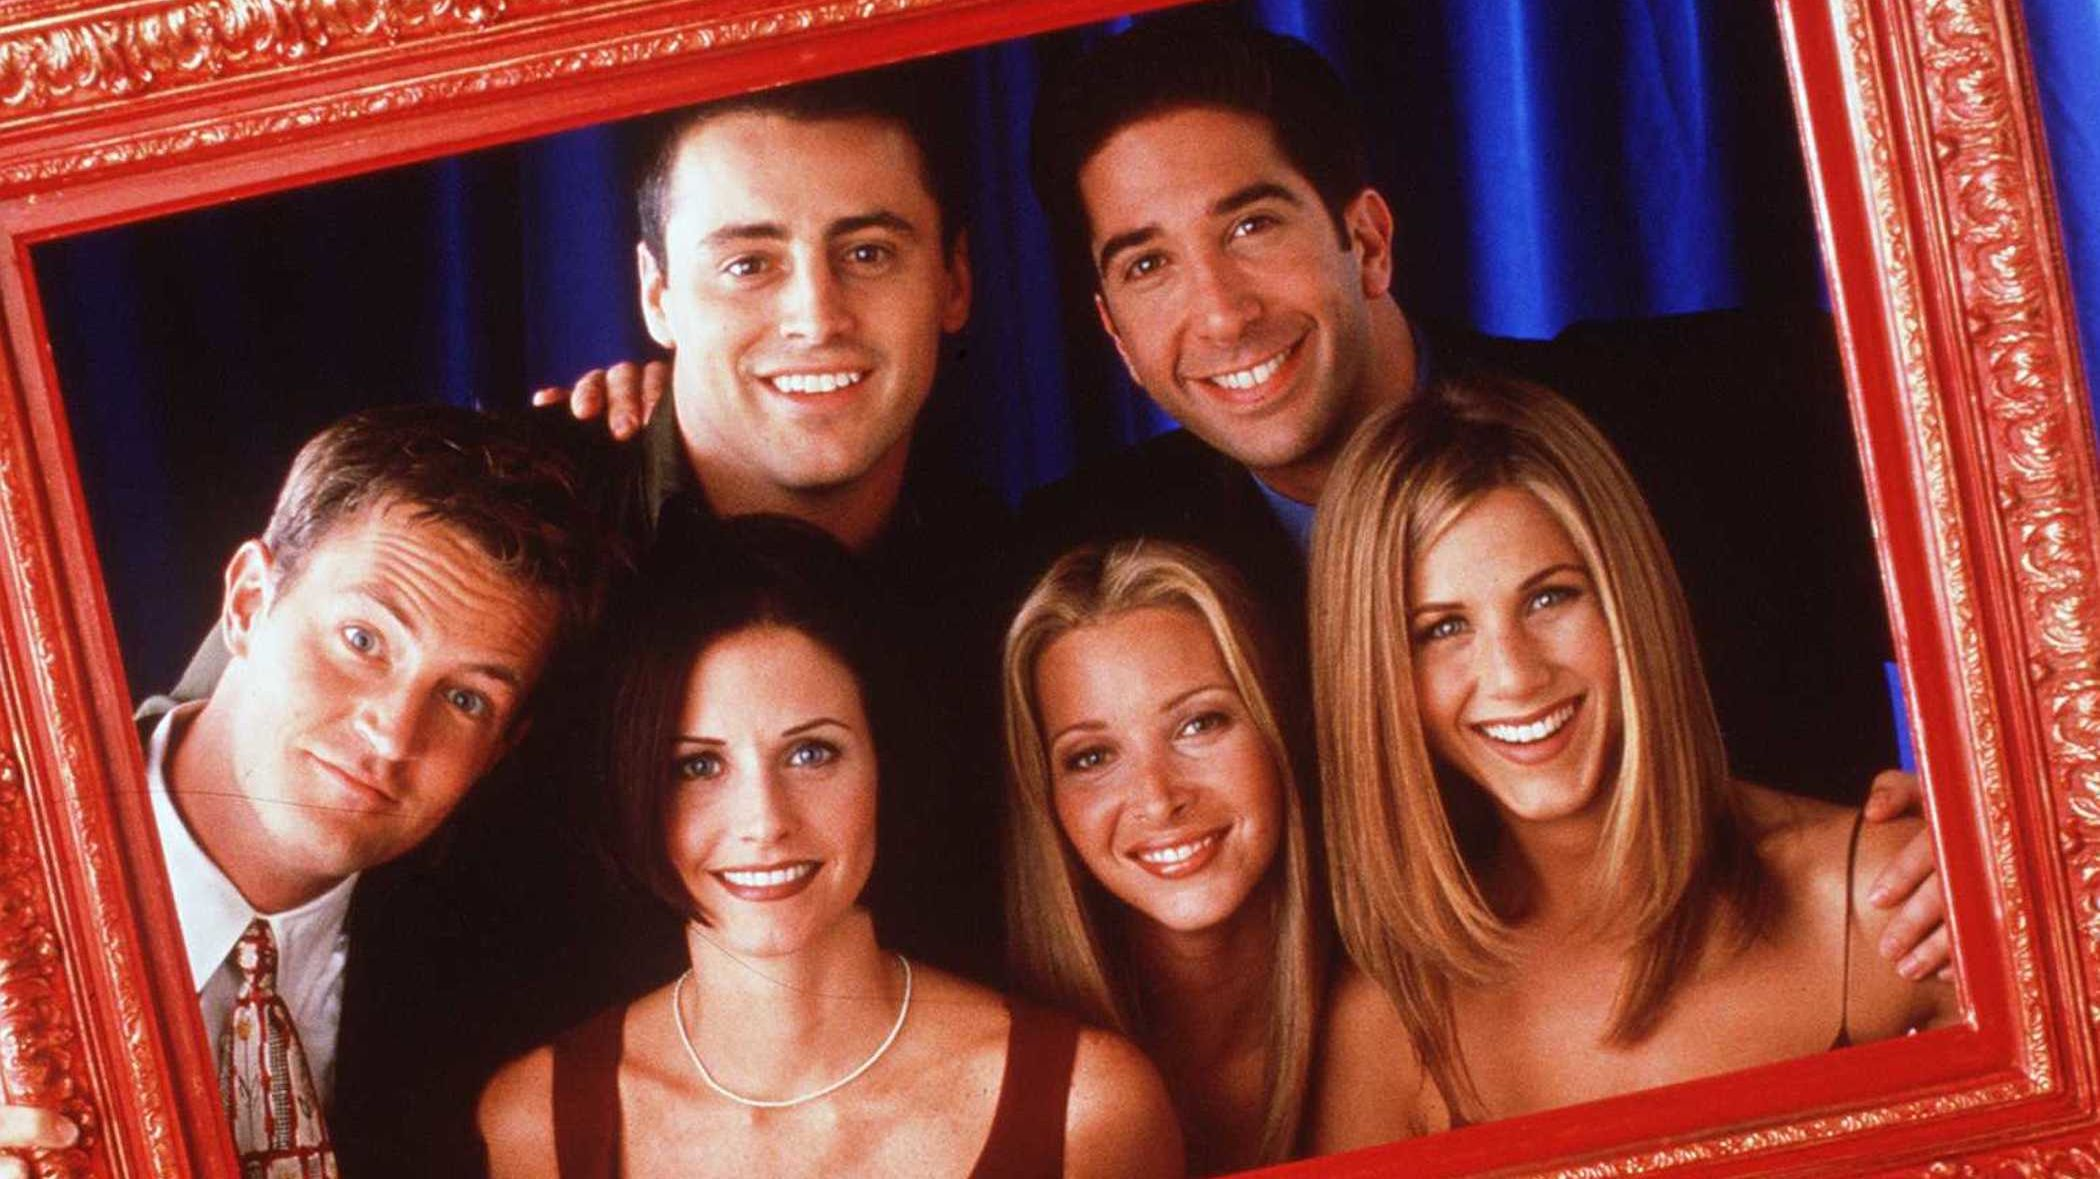 'The Friends Effect' on Learning the English Language